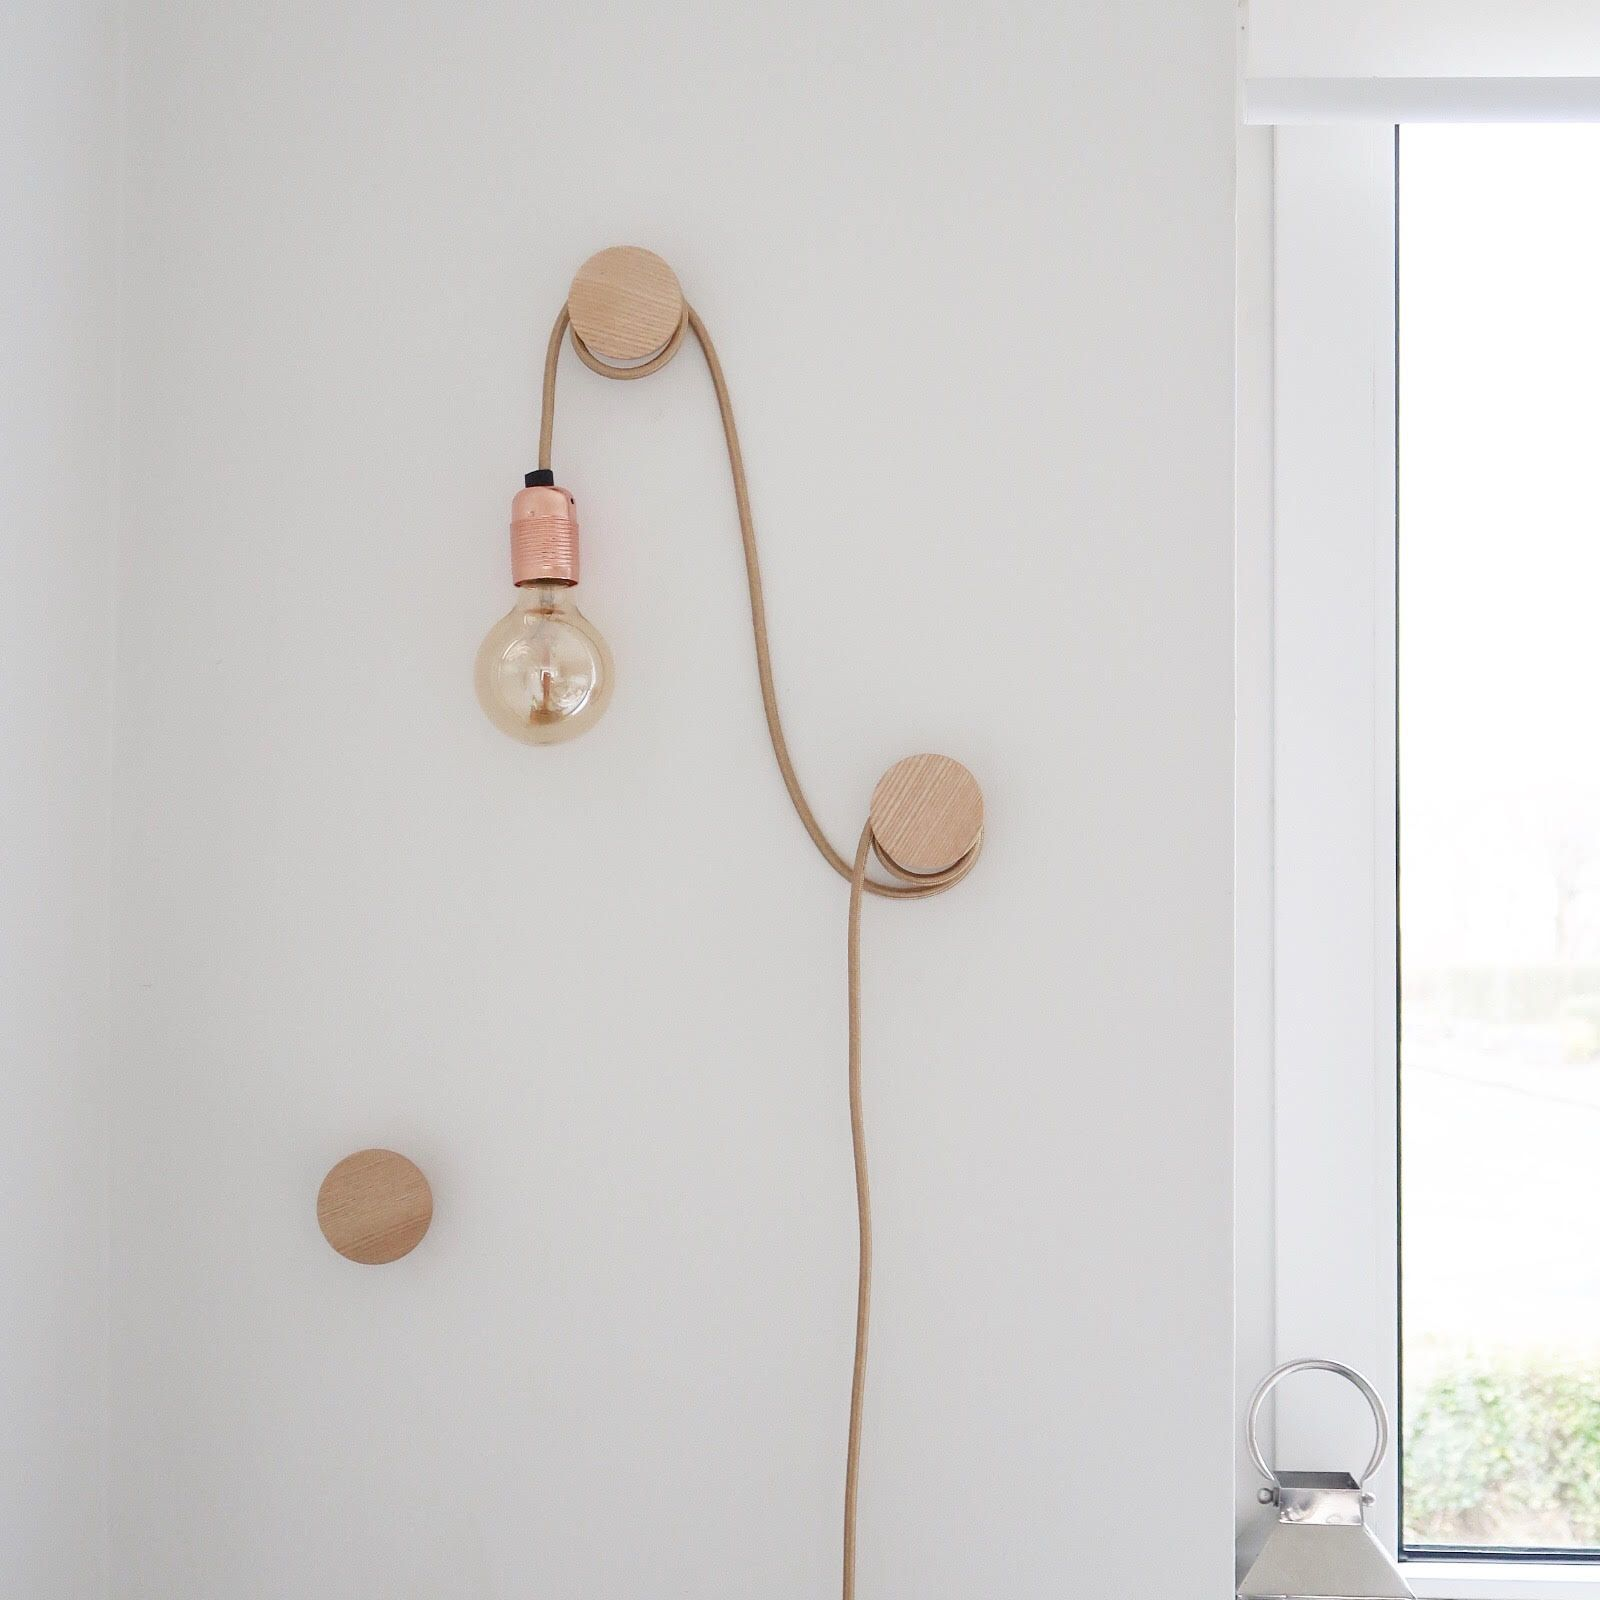 Wall Hanging Lights: Hanging Bare Bulb Feature Light Rope Light On Wooden Wall